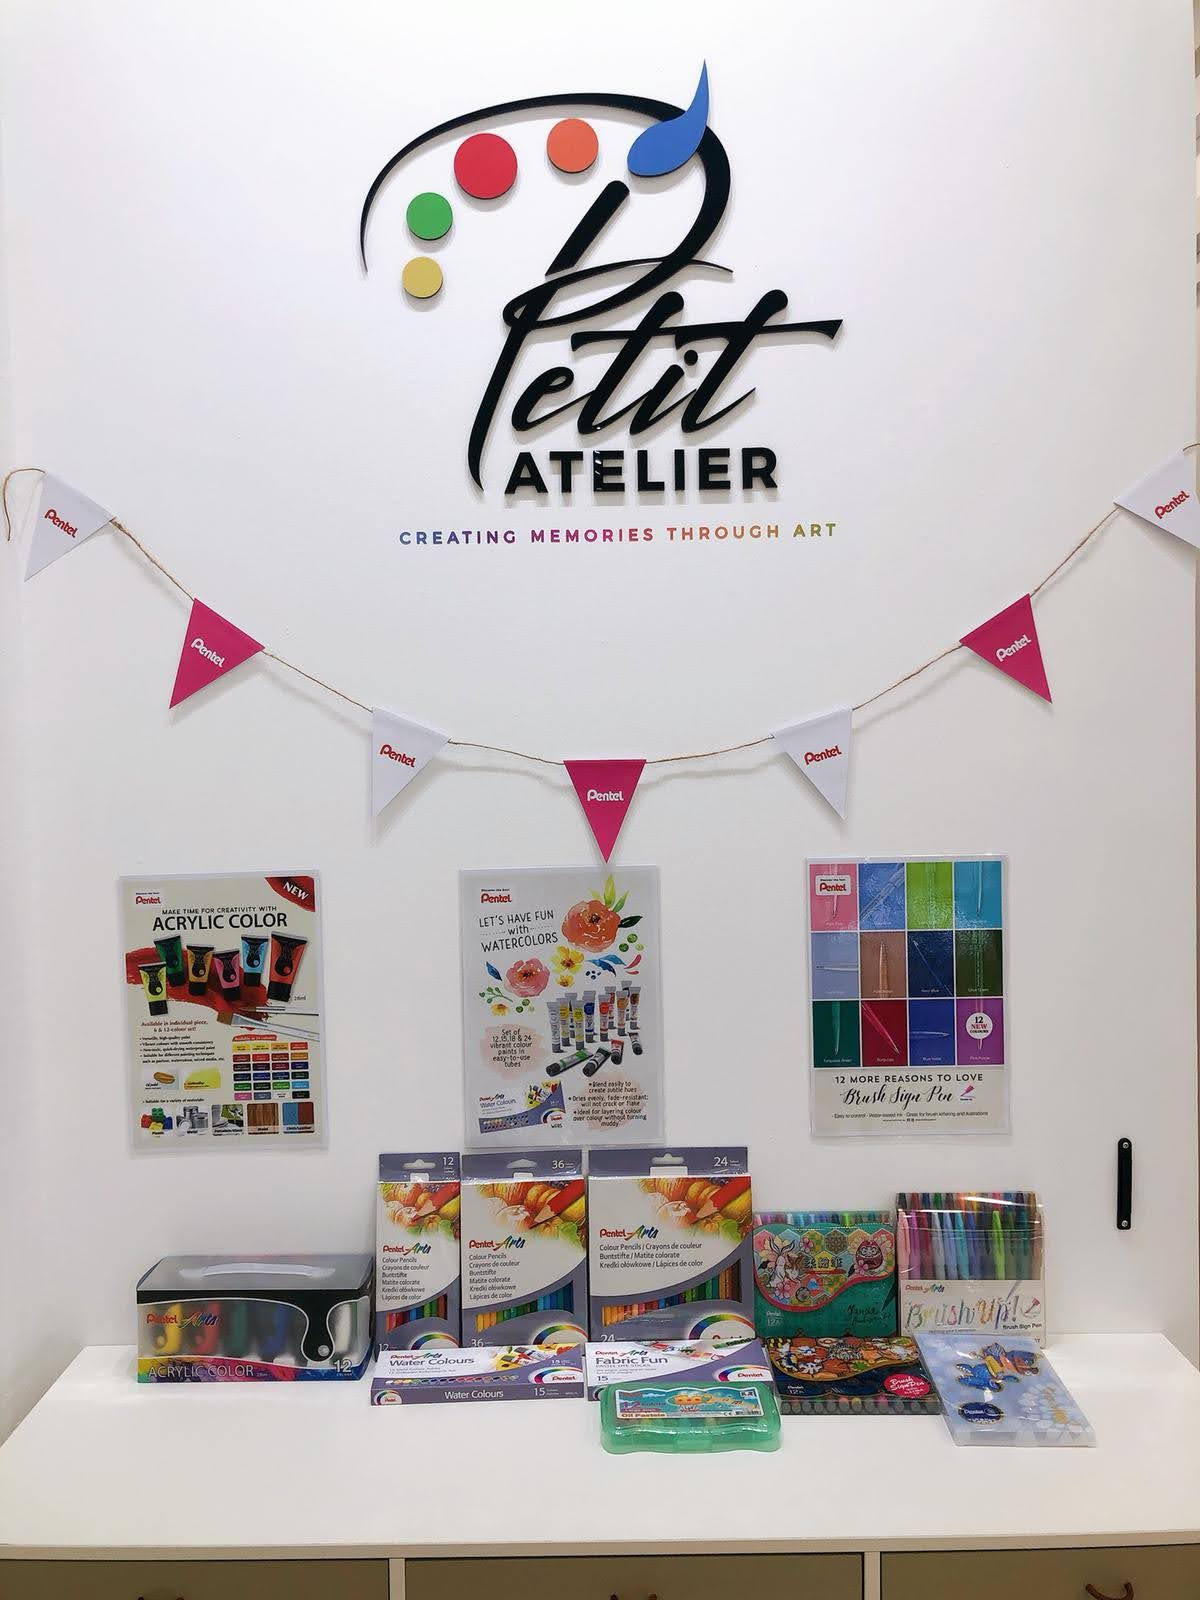 Pentel X Petit Atelier Collaboration